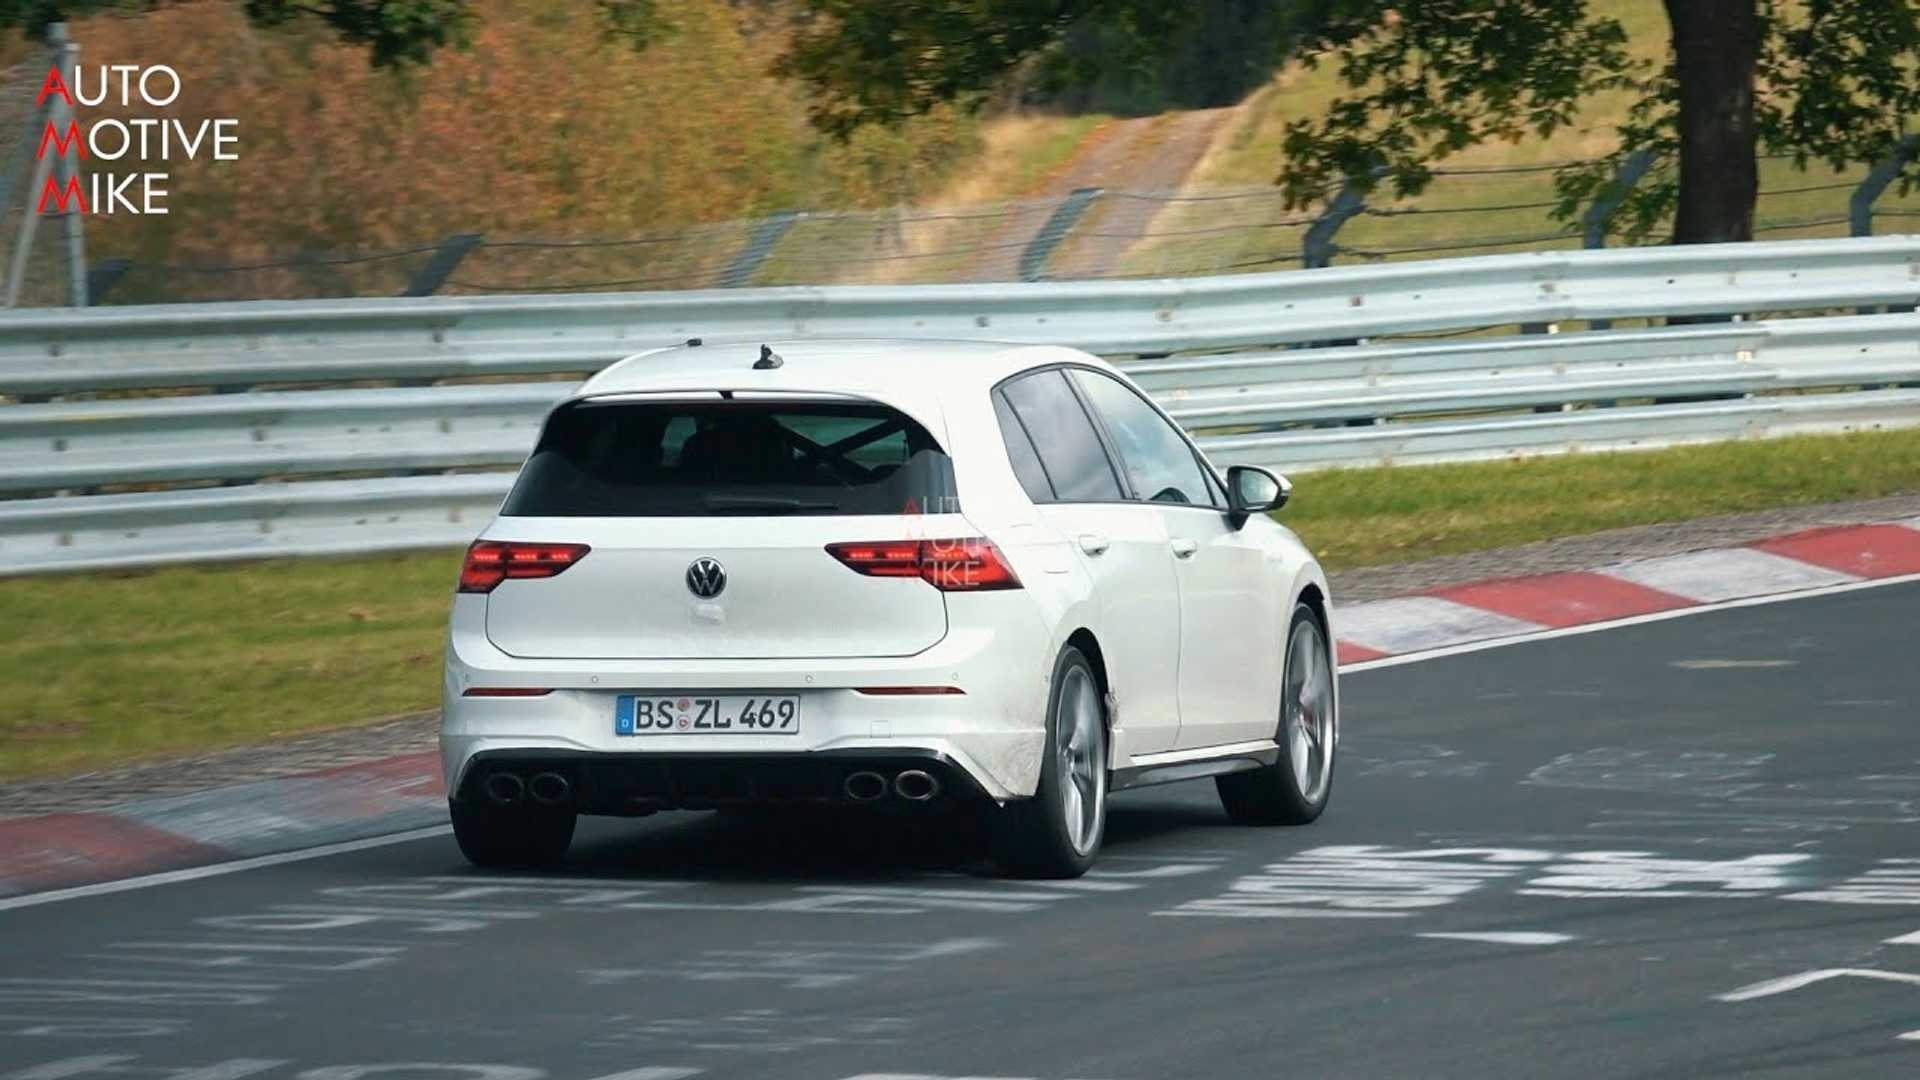 New Volkswagen Golf R Spied During Final Testing - Motor1